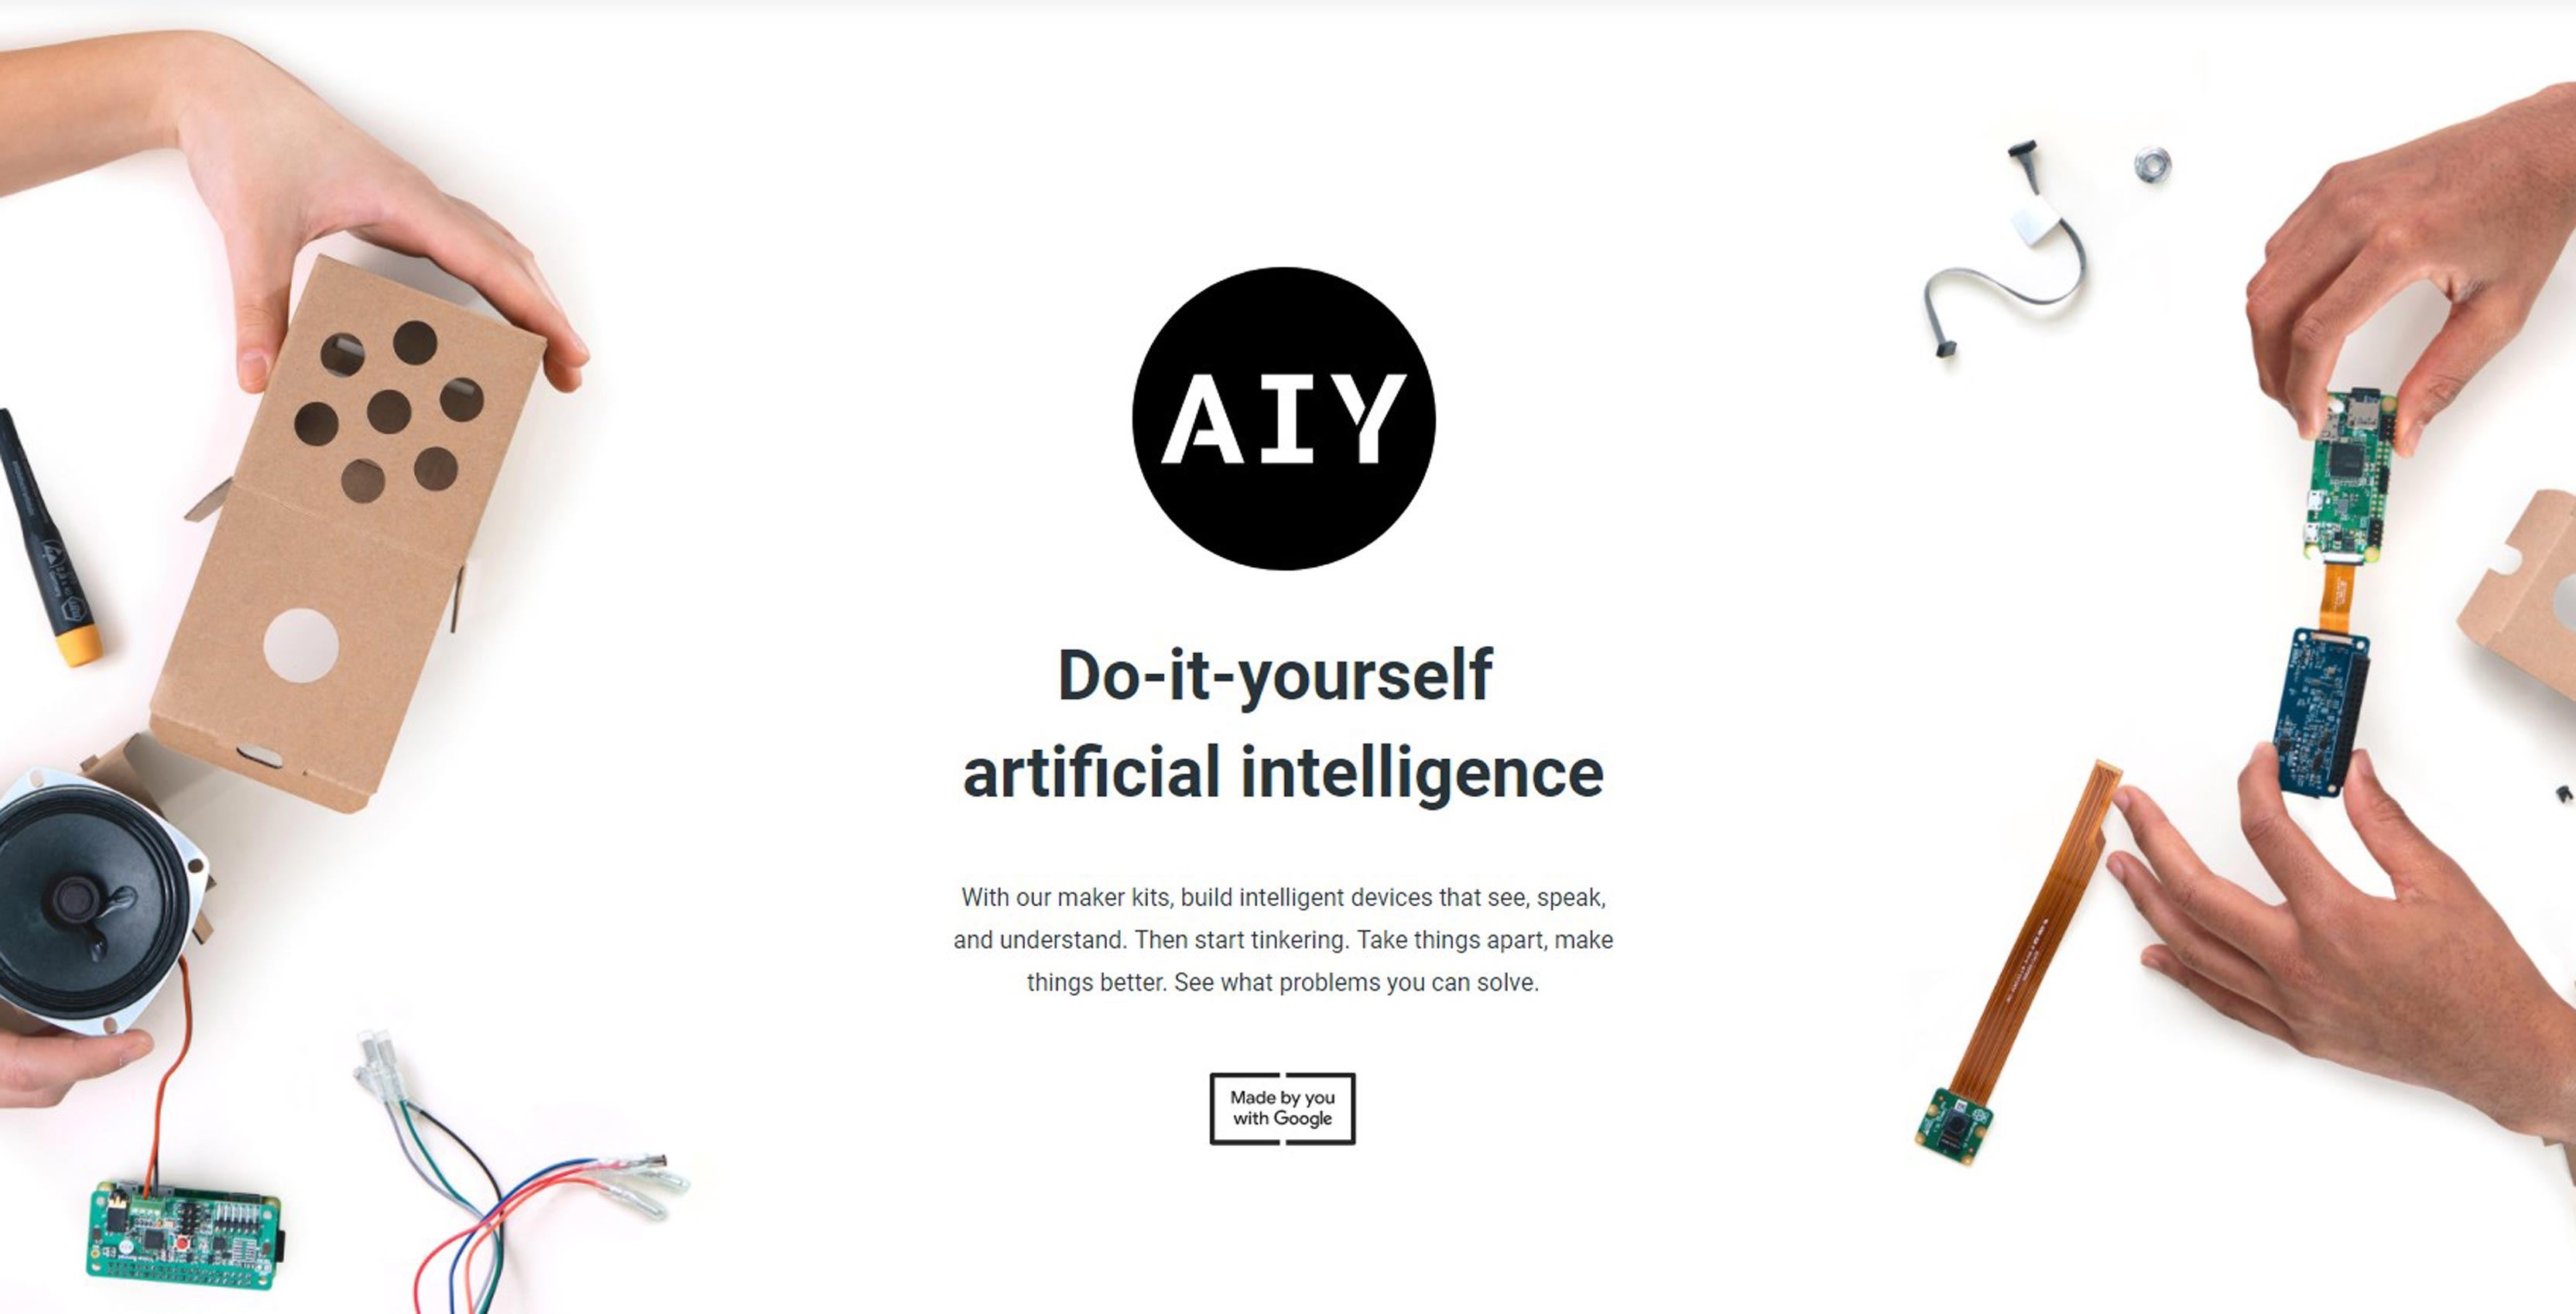 Build your own smart speaker or camera with googles aiy projects if youre a frequent mobilesyrups reader youll know were big fans of do it yourself maker kits theres just something rad about products that encourage solutioingenieria Image collections